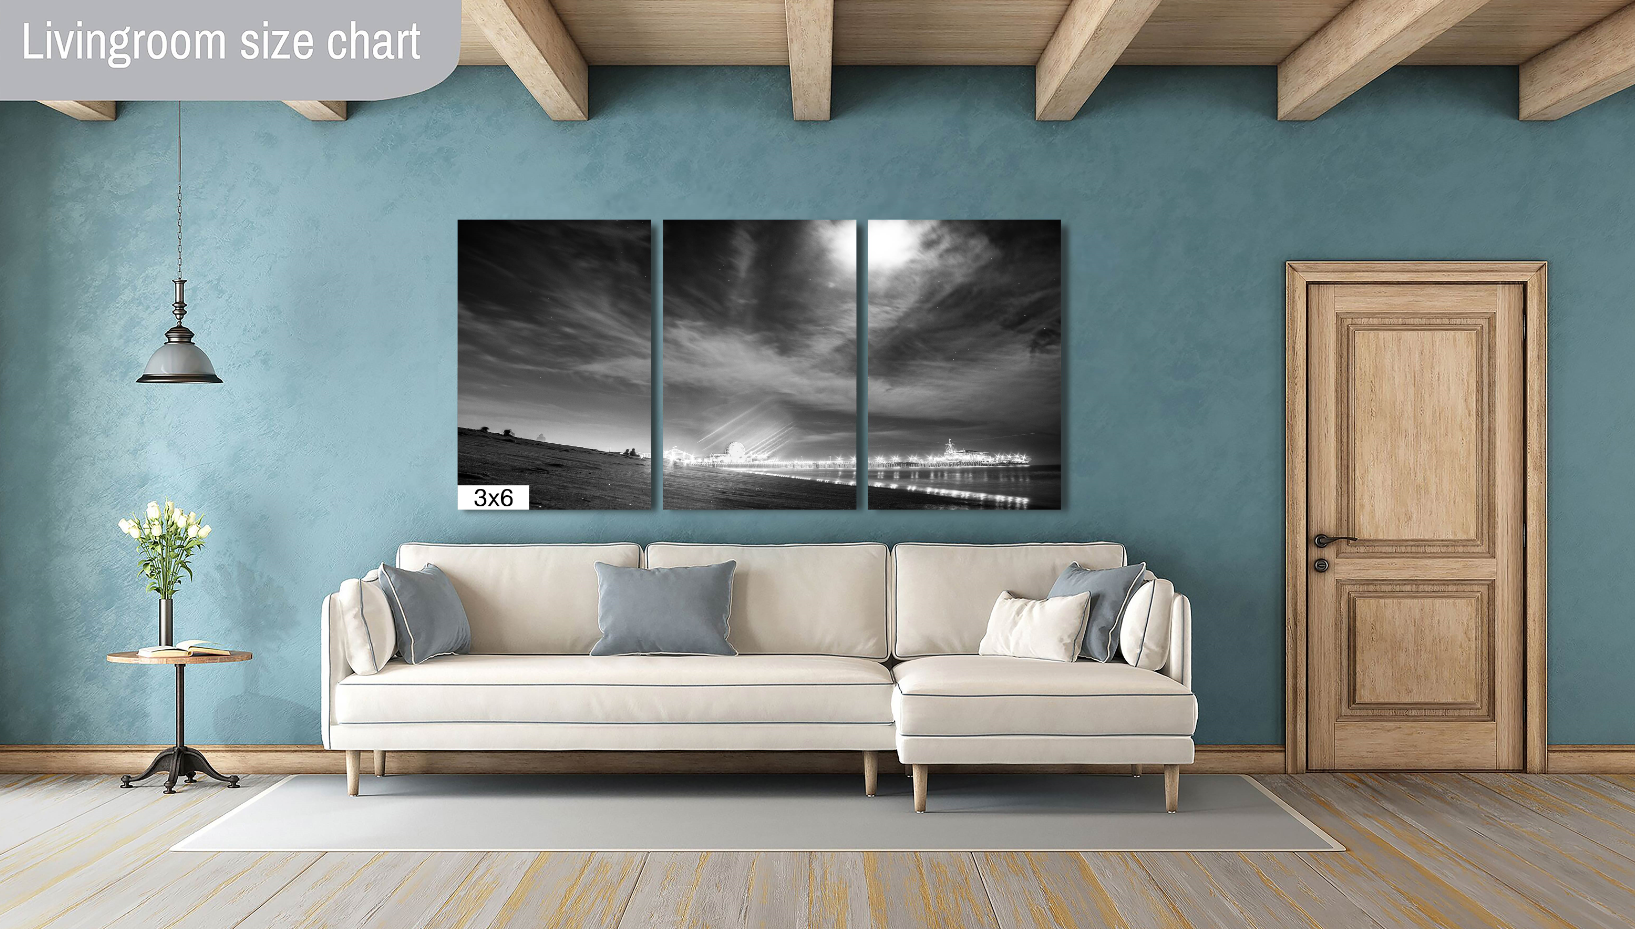 Santa Monica Beach Pier Los Angeles California Canvas Print Metal Art Cityscape Landmark Bedroom Livingroom wall art decor home poster